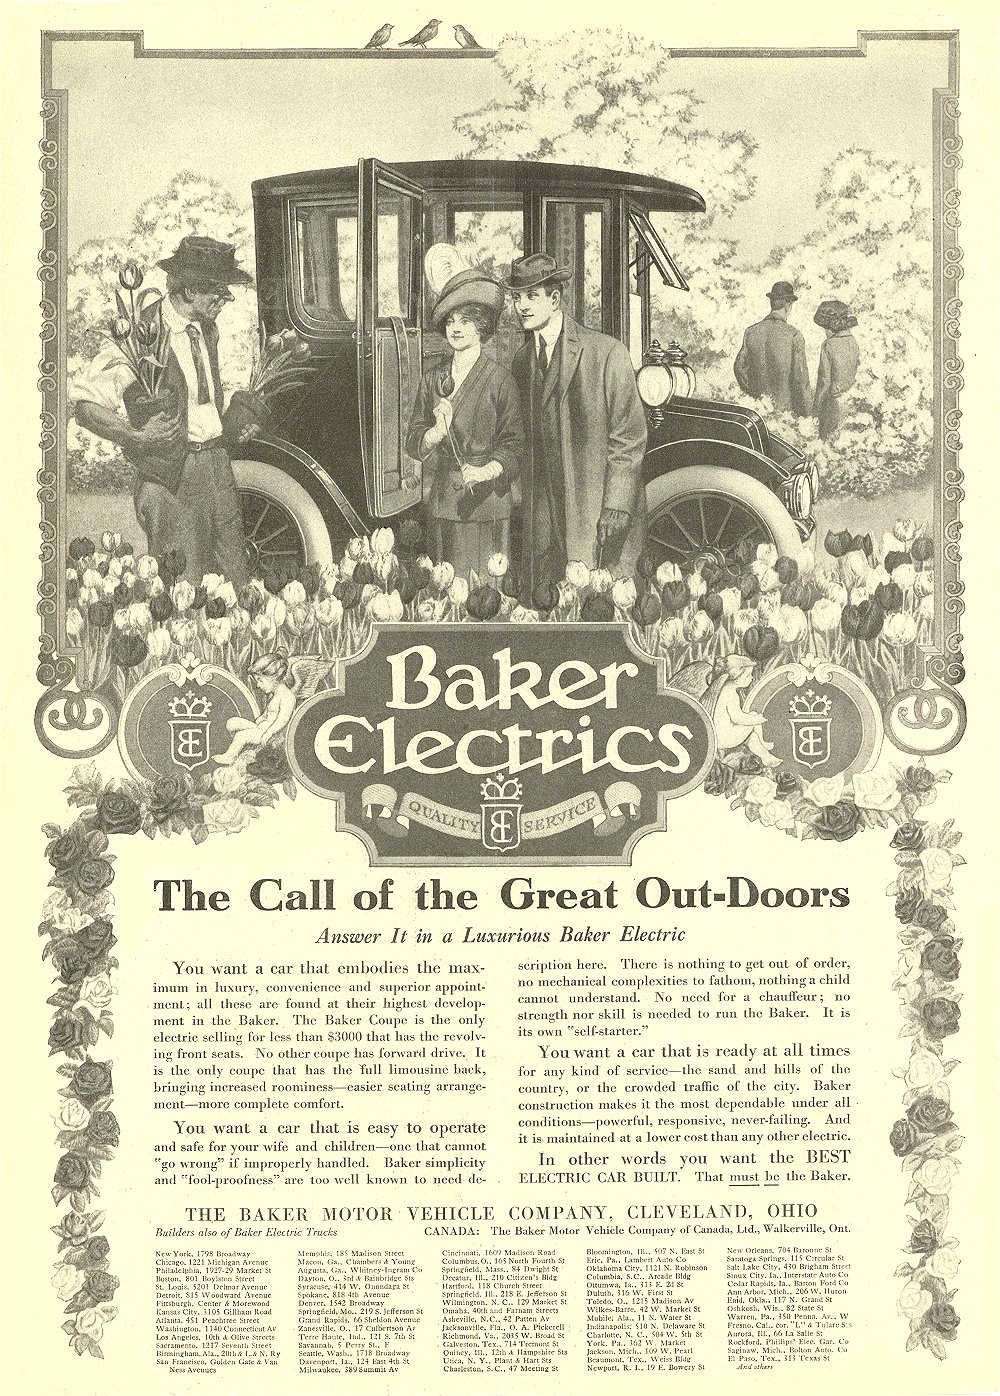 1913 3 29 BAKER Electric The Call of the Great Out-Doors THE BAKER MOTOR VEHICLE COMPANY Cleveland, OHIO Collier's March 29, 1913 10.25″x14″ Inside front cover